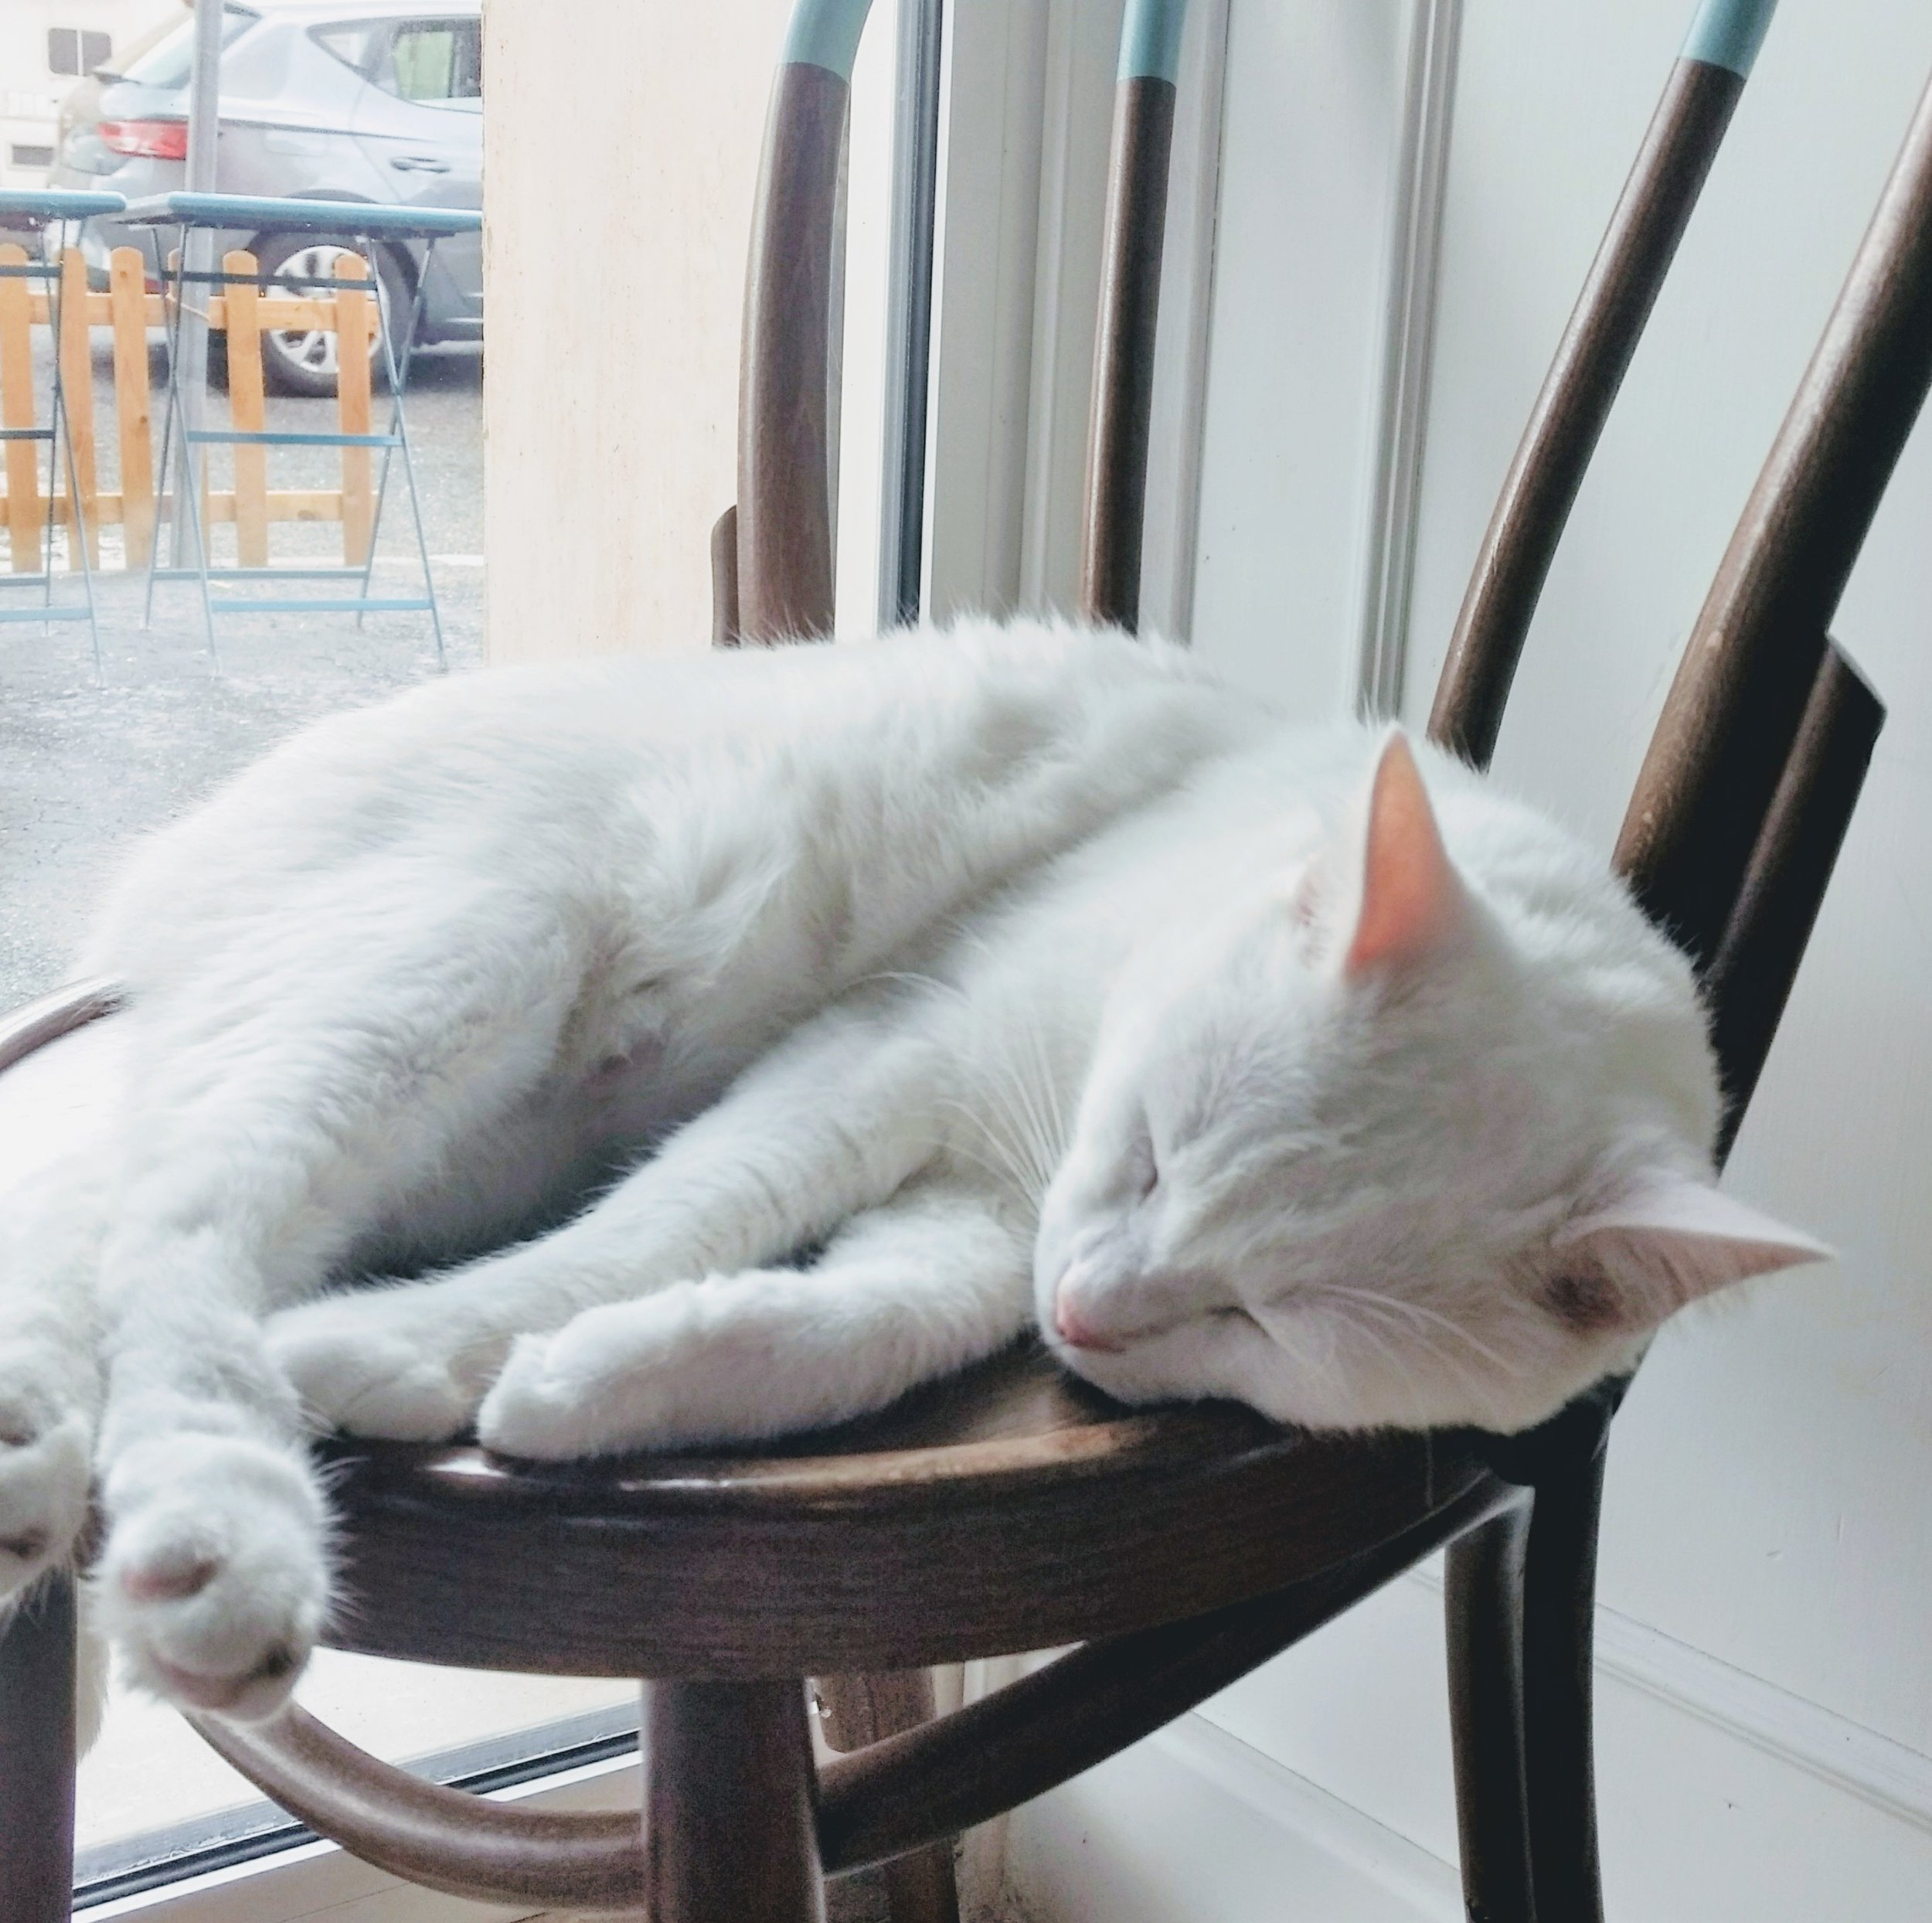 We even found cousin of our Sasha from pawquarters, sleeping on the chair!